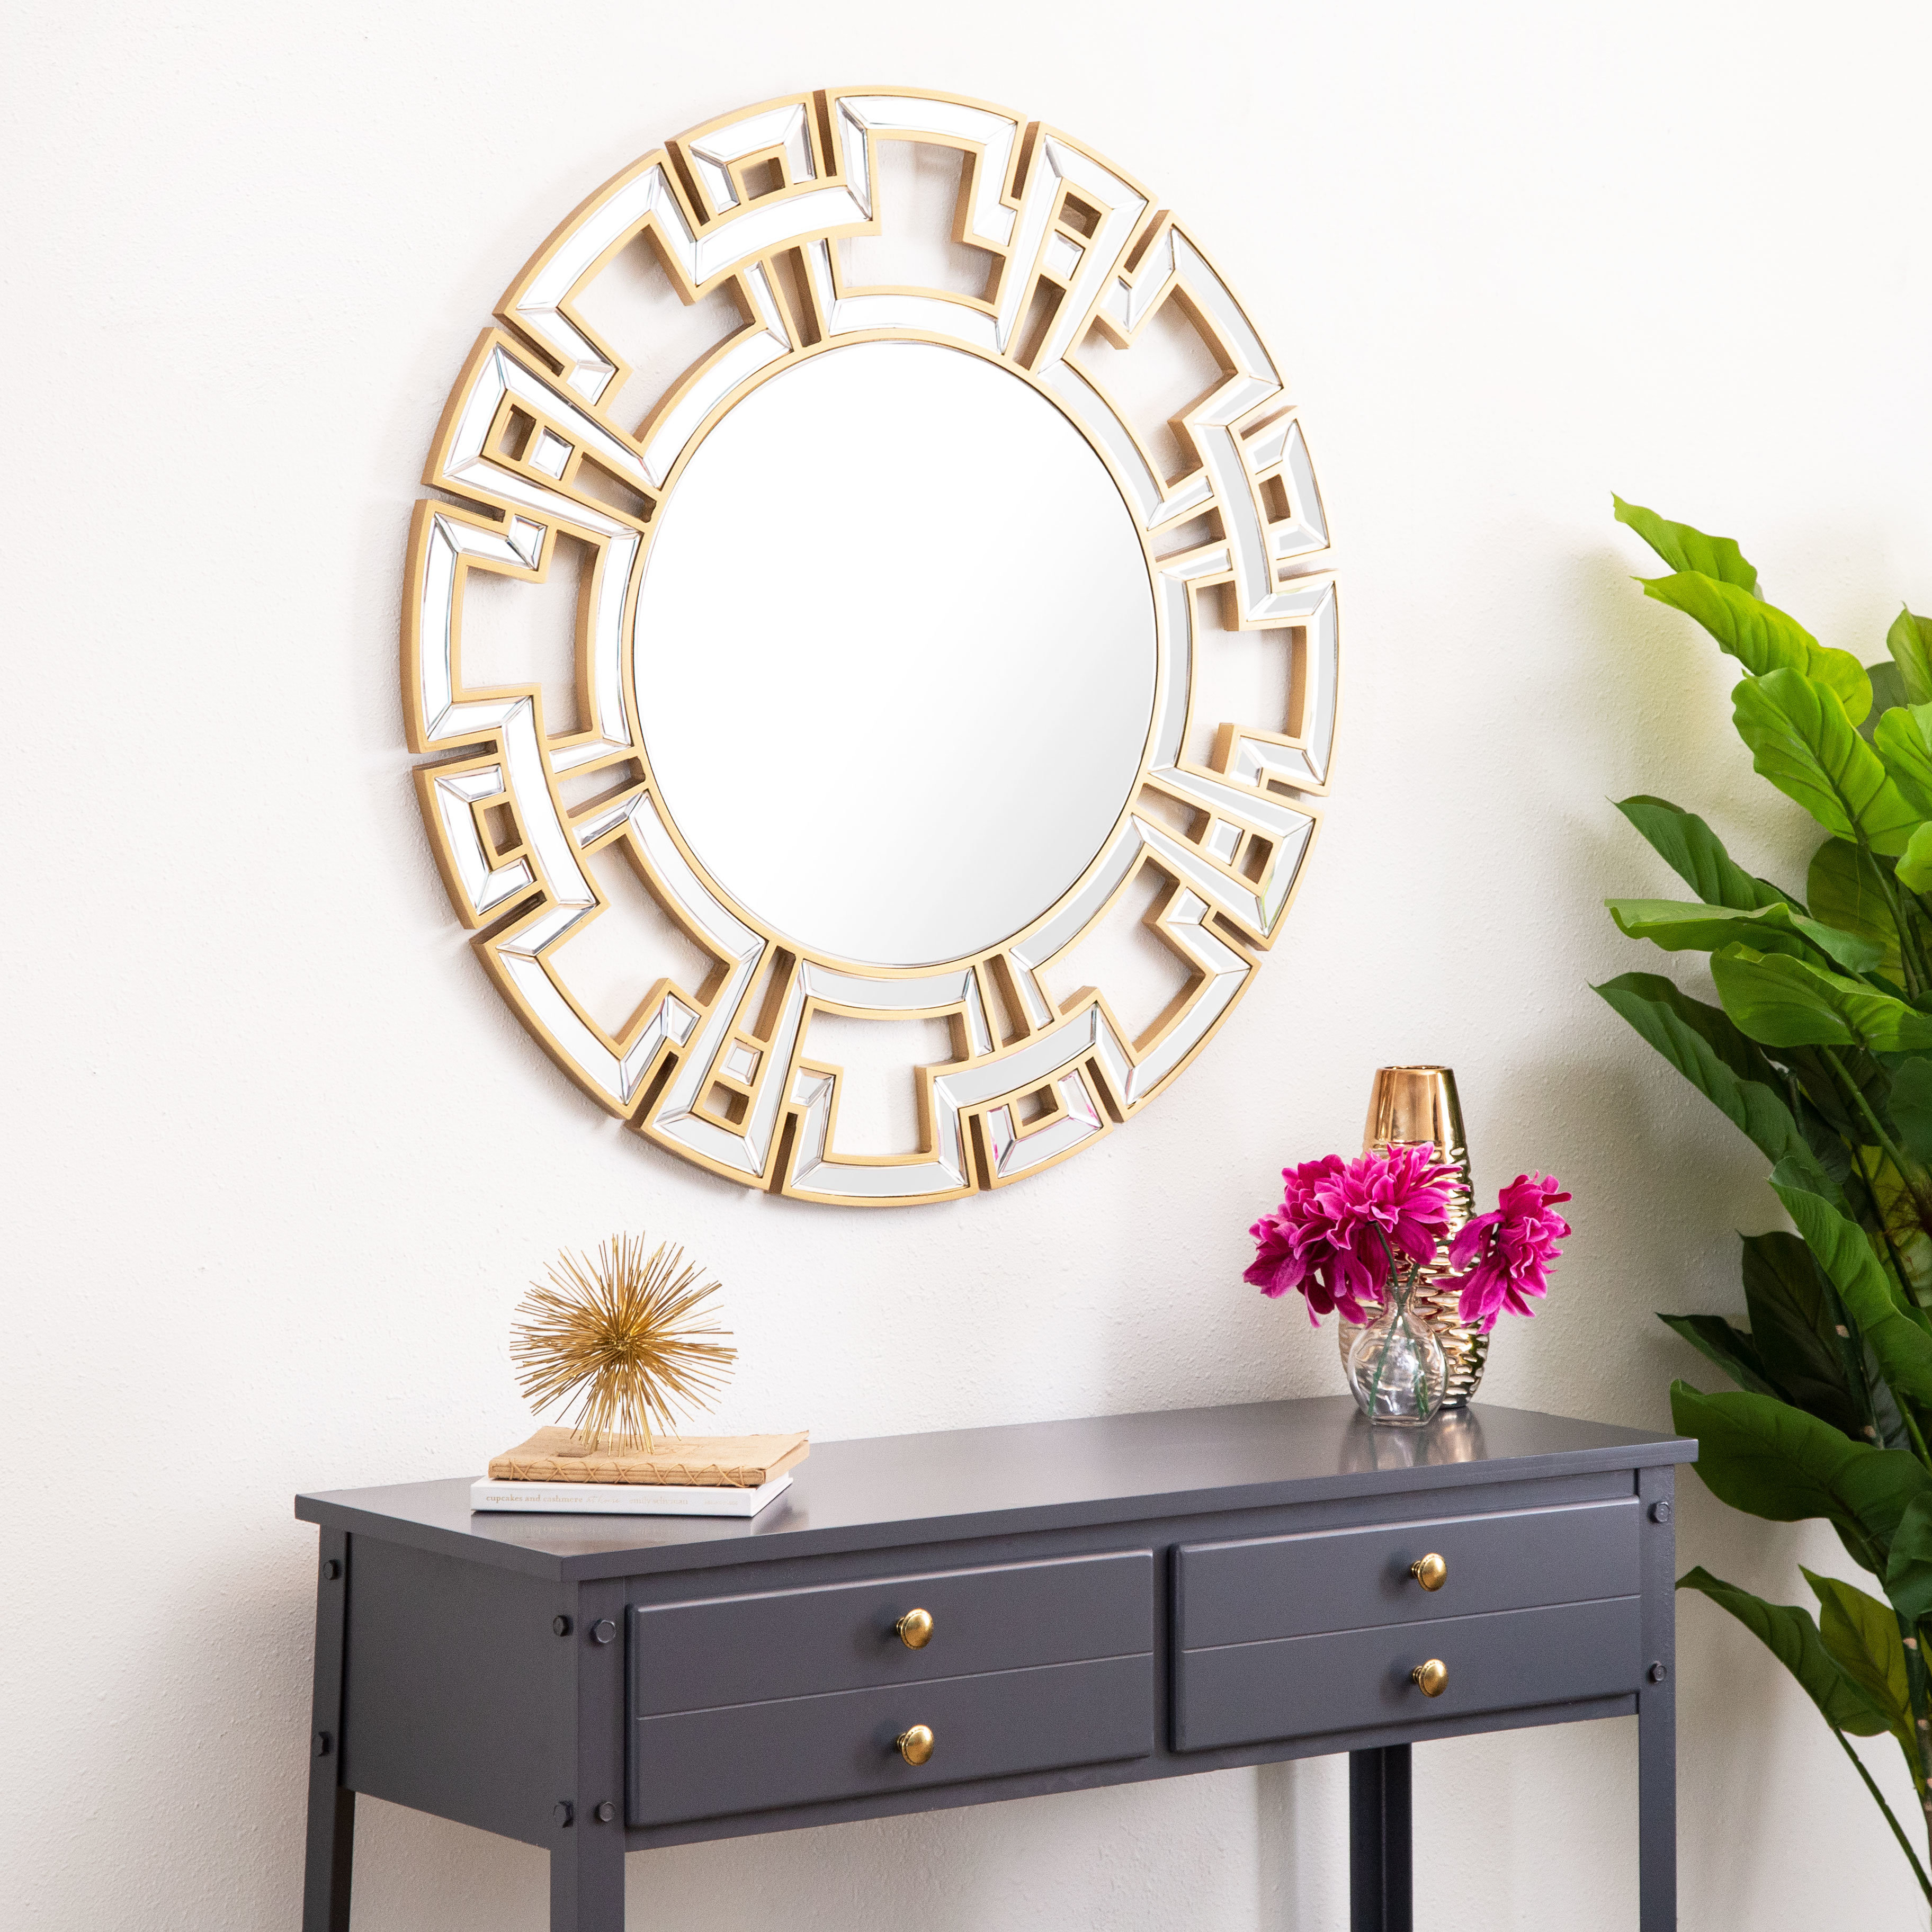 Tata Openwork Round Wall Mirror Intended For Tata Openwork Round Wall Mirrors (Image 14 of 20)